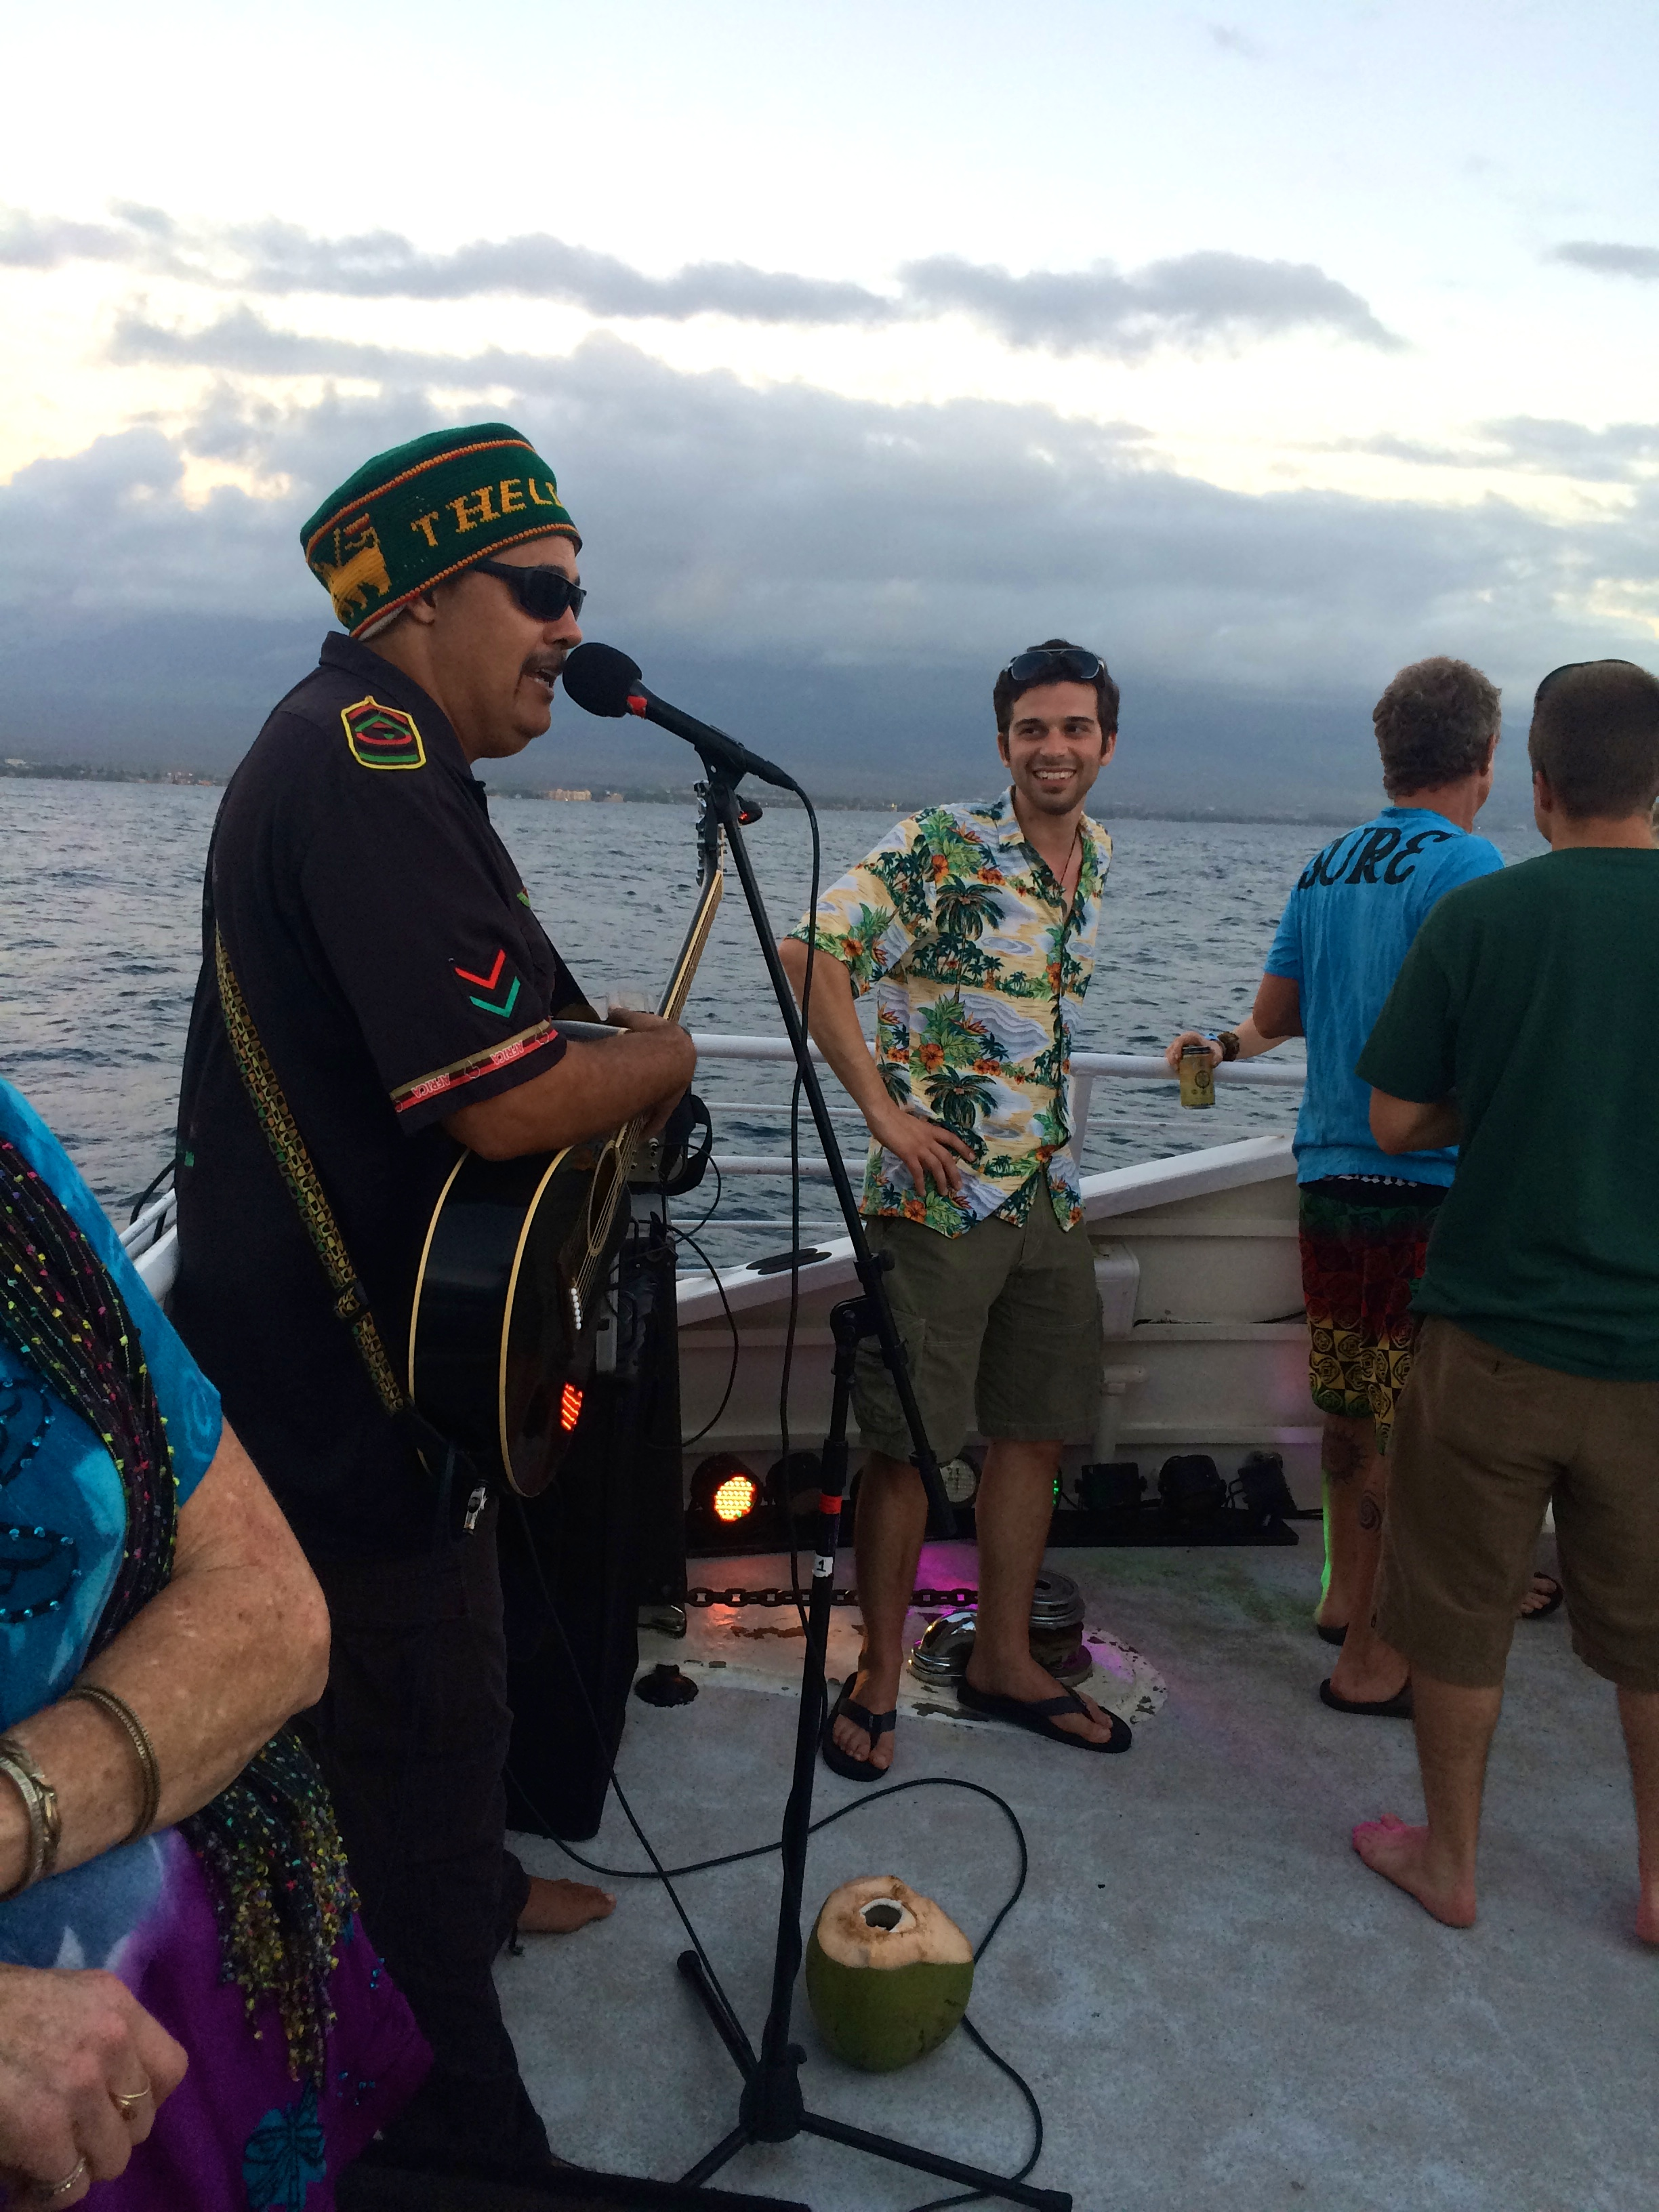 Marty Dread sings on the Island Rhythms cruise.